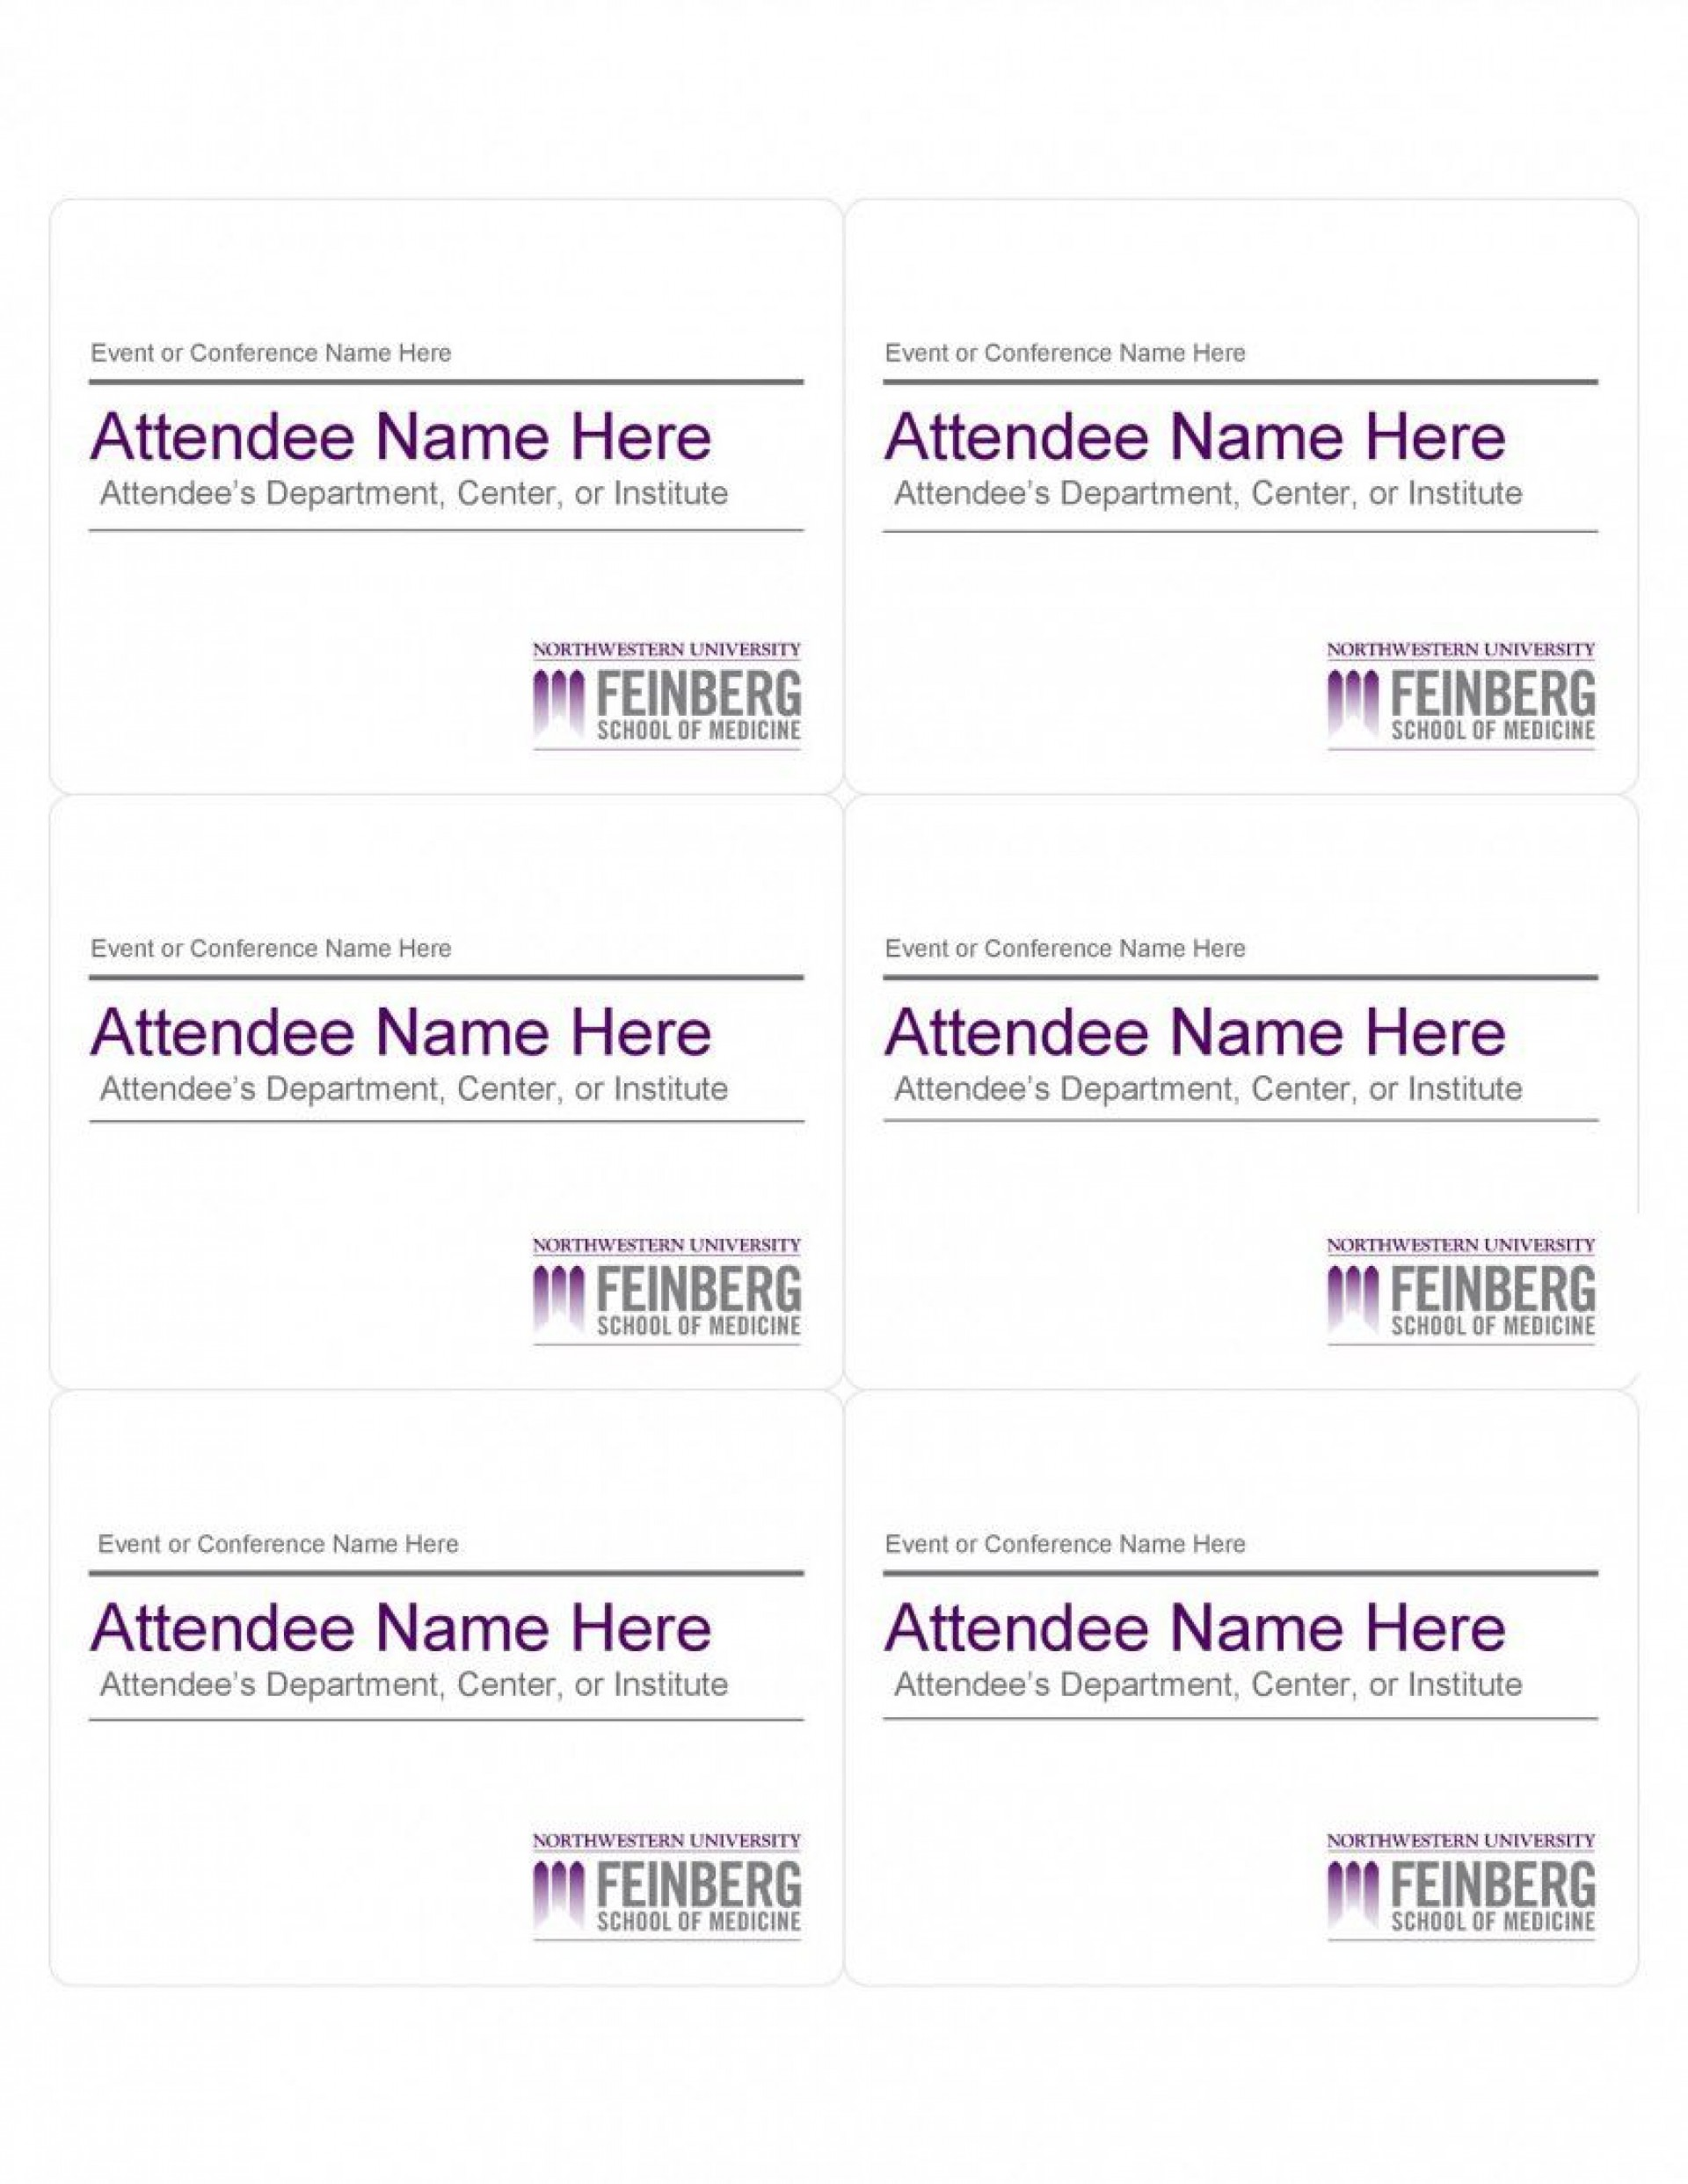 001 Astounding Name Badge Template Word Photo  Free Download 2010 Avery 53921920